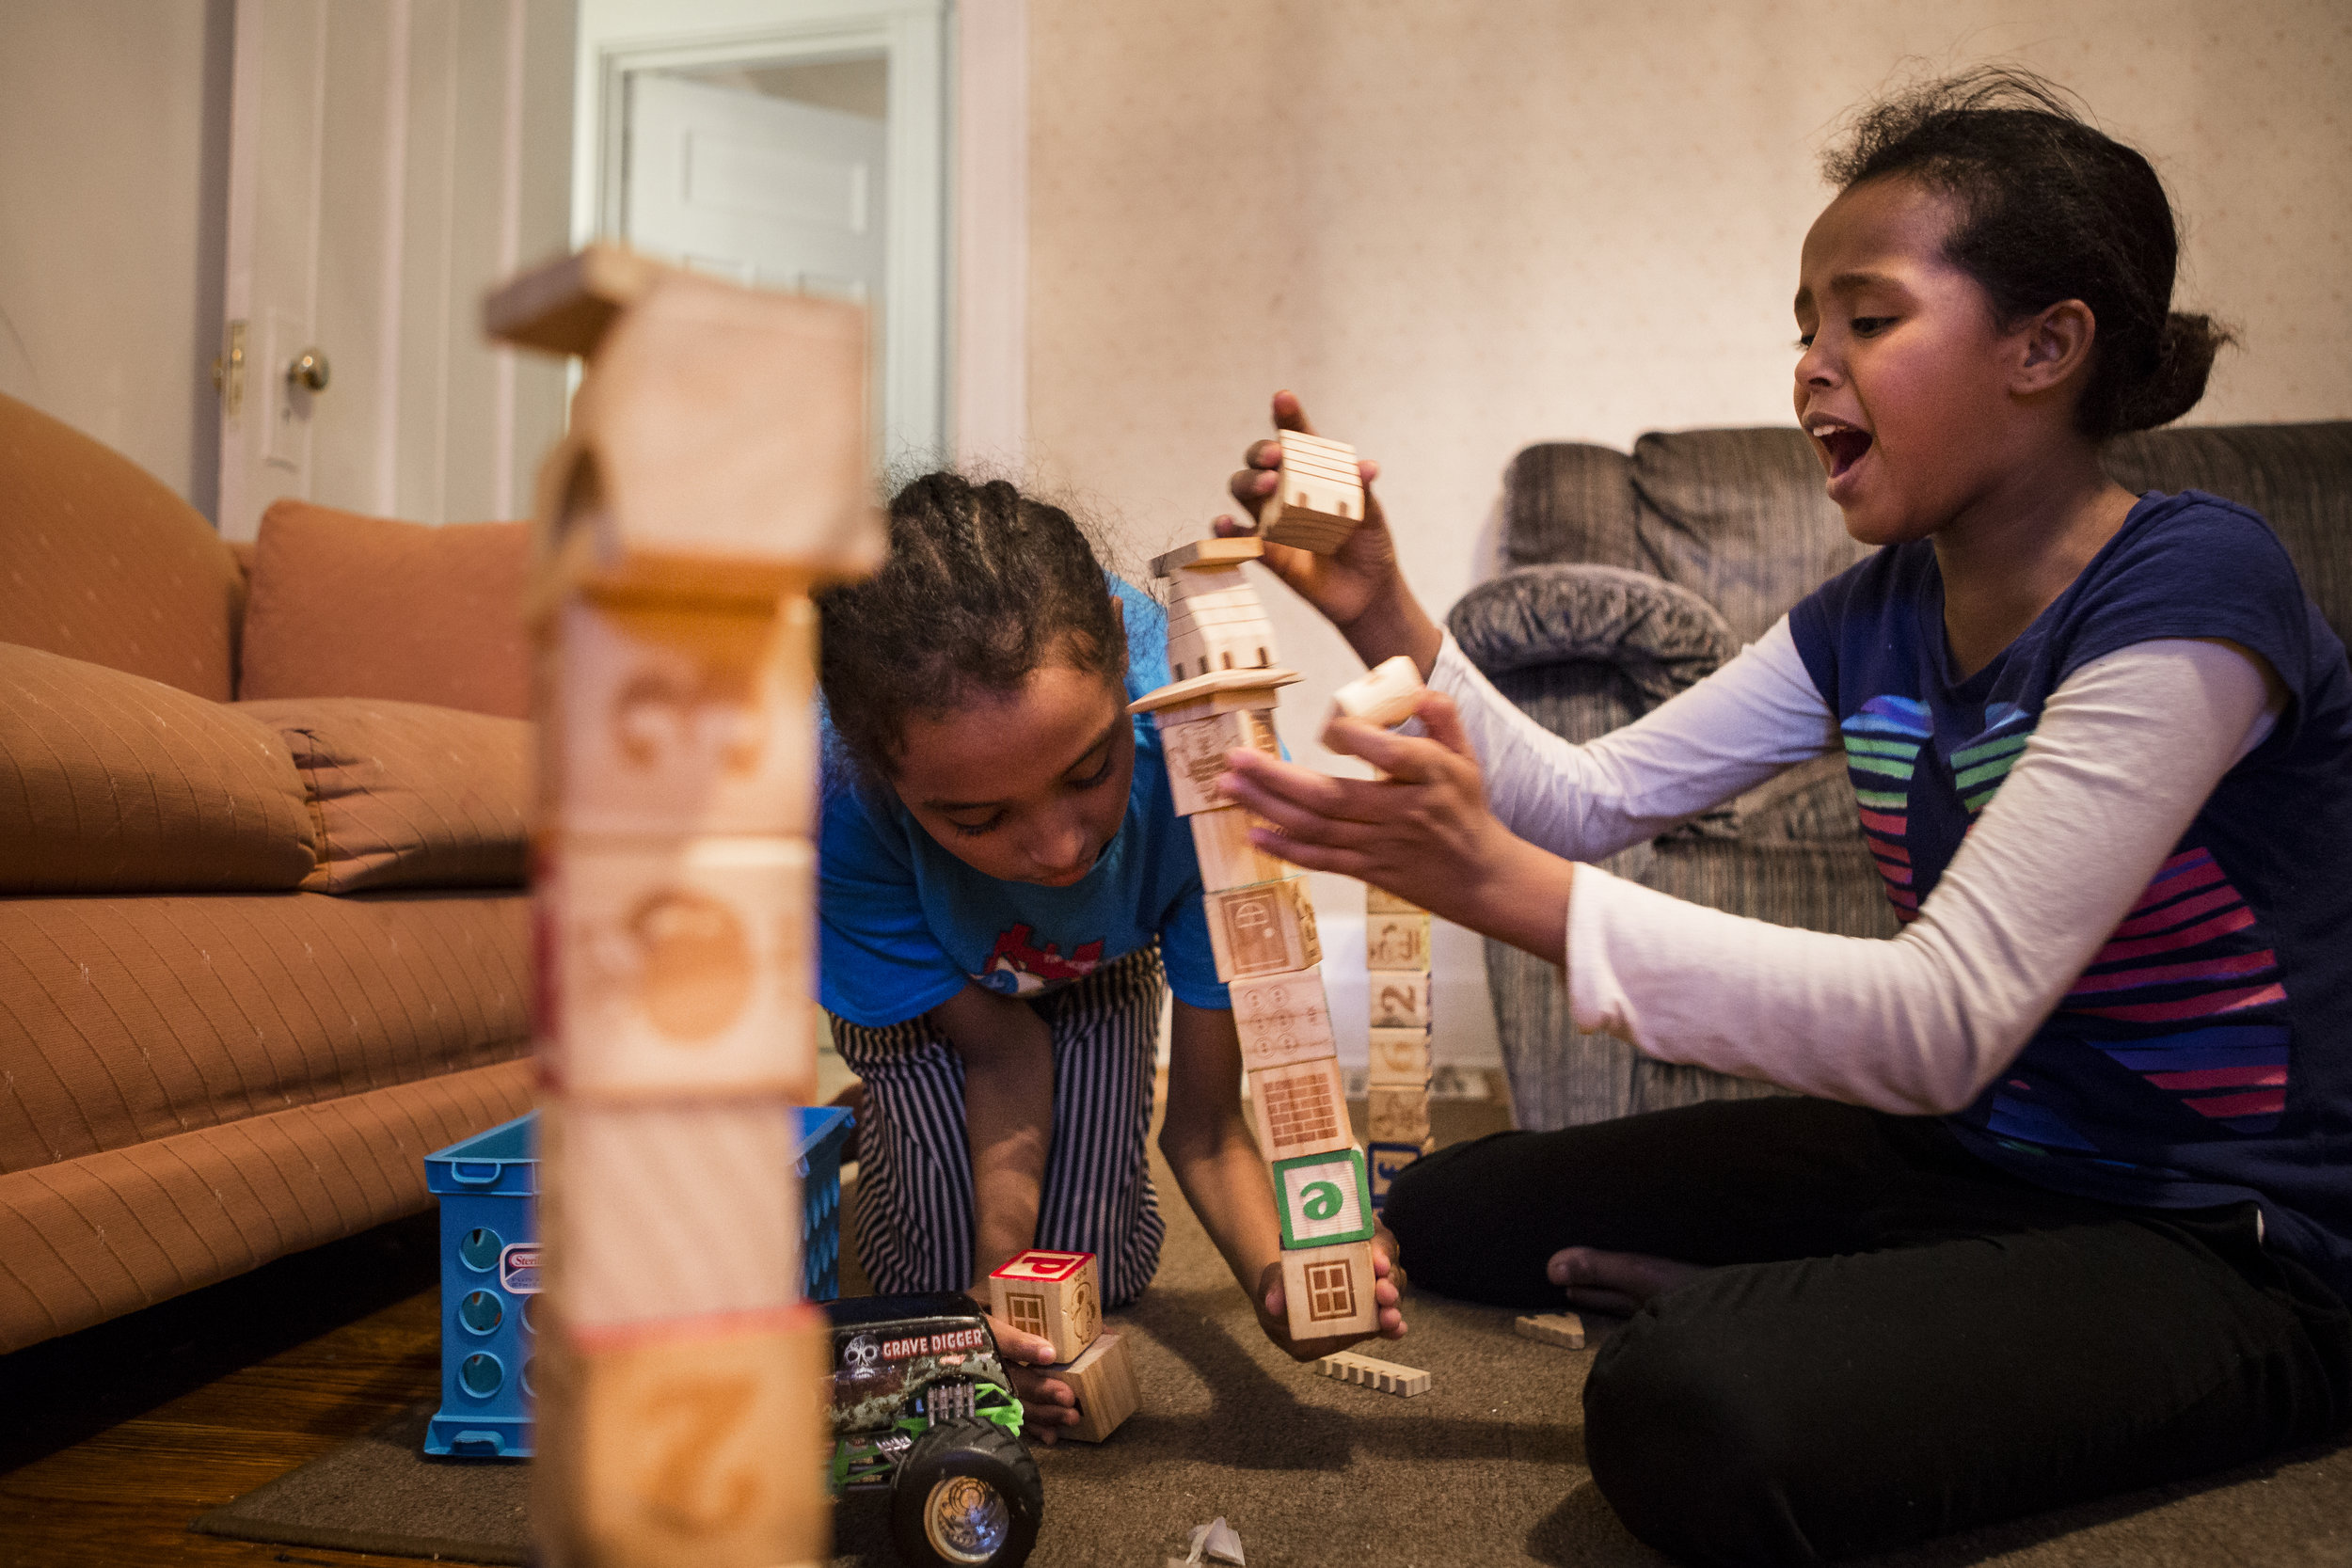 Twins Najma (right) and Nadira play with blocks on a Thursday evening. Dec 1, 2016